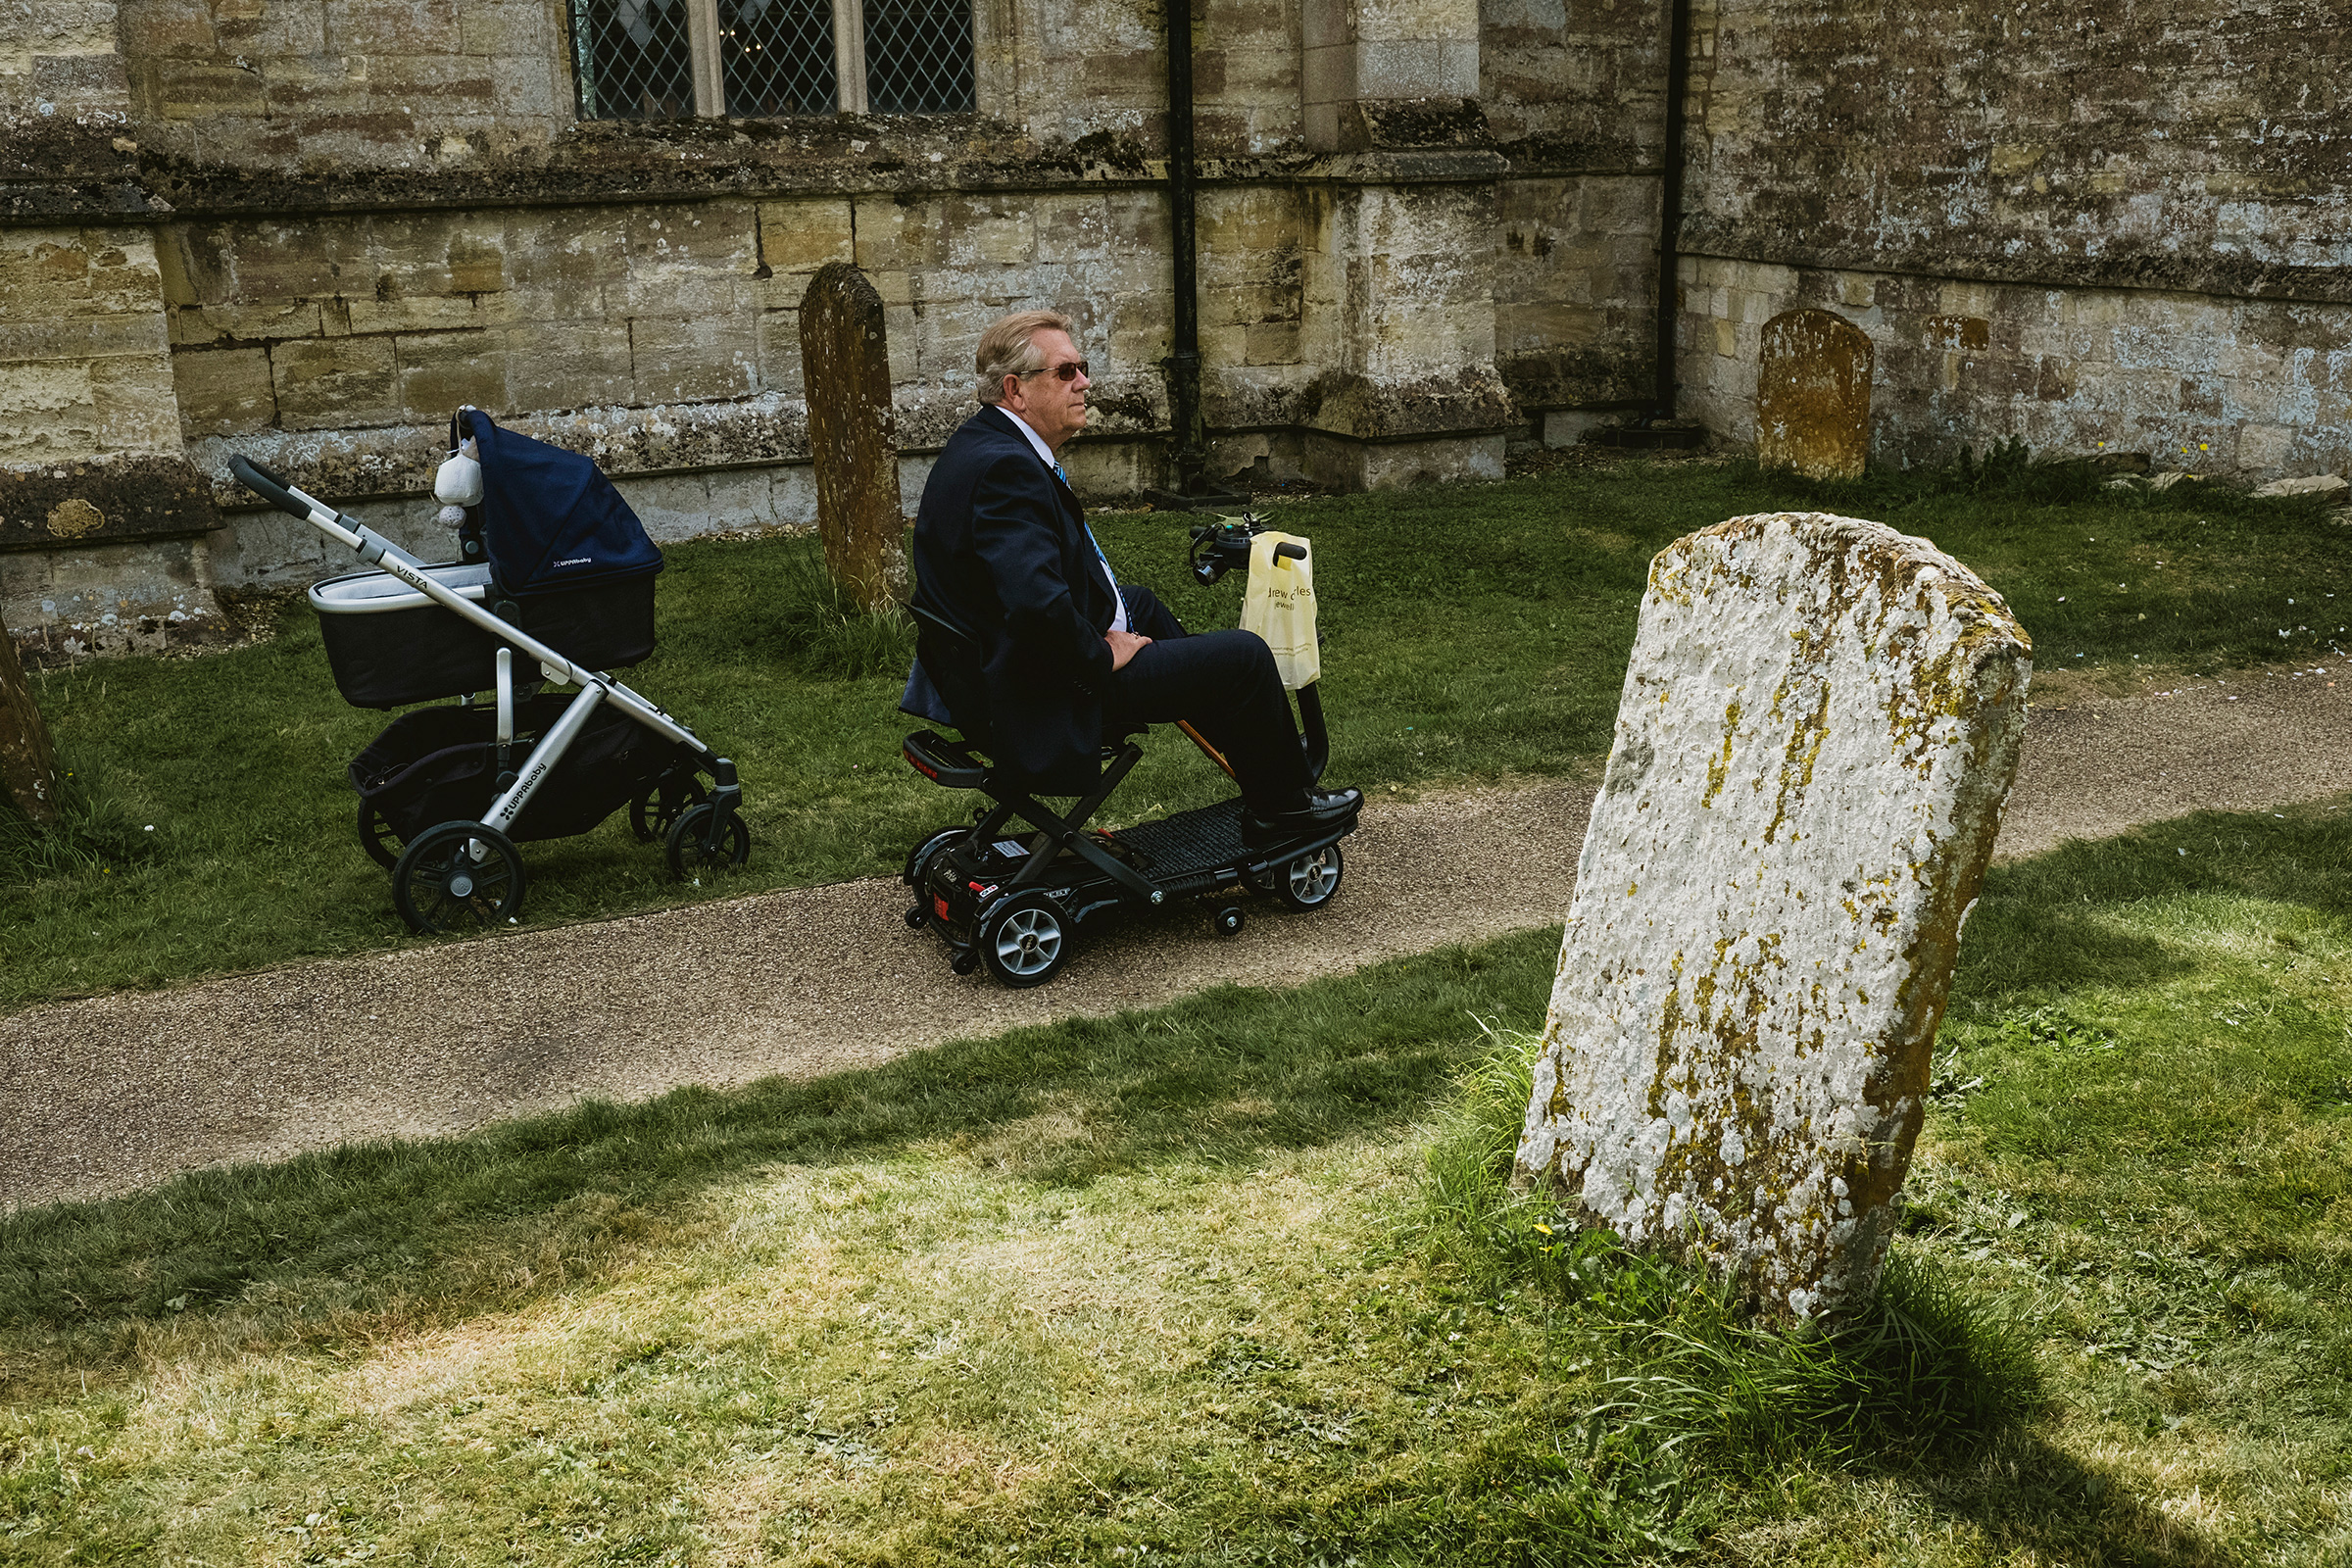 Grandfather next to baby carriage - photo by York Place Studios